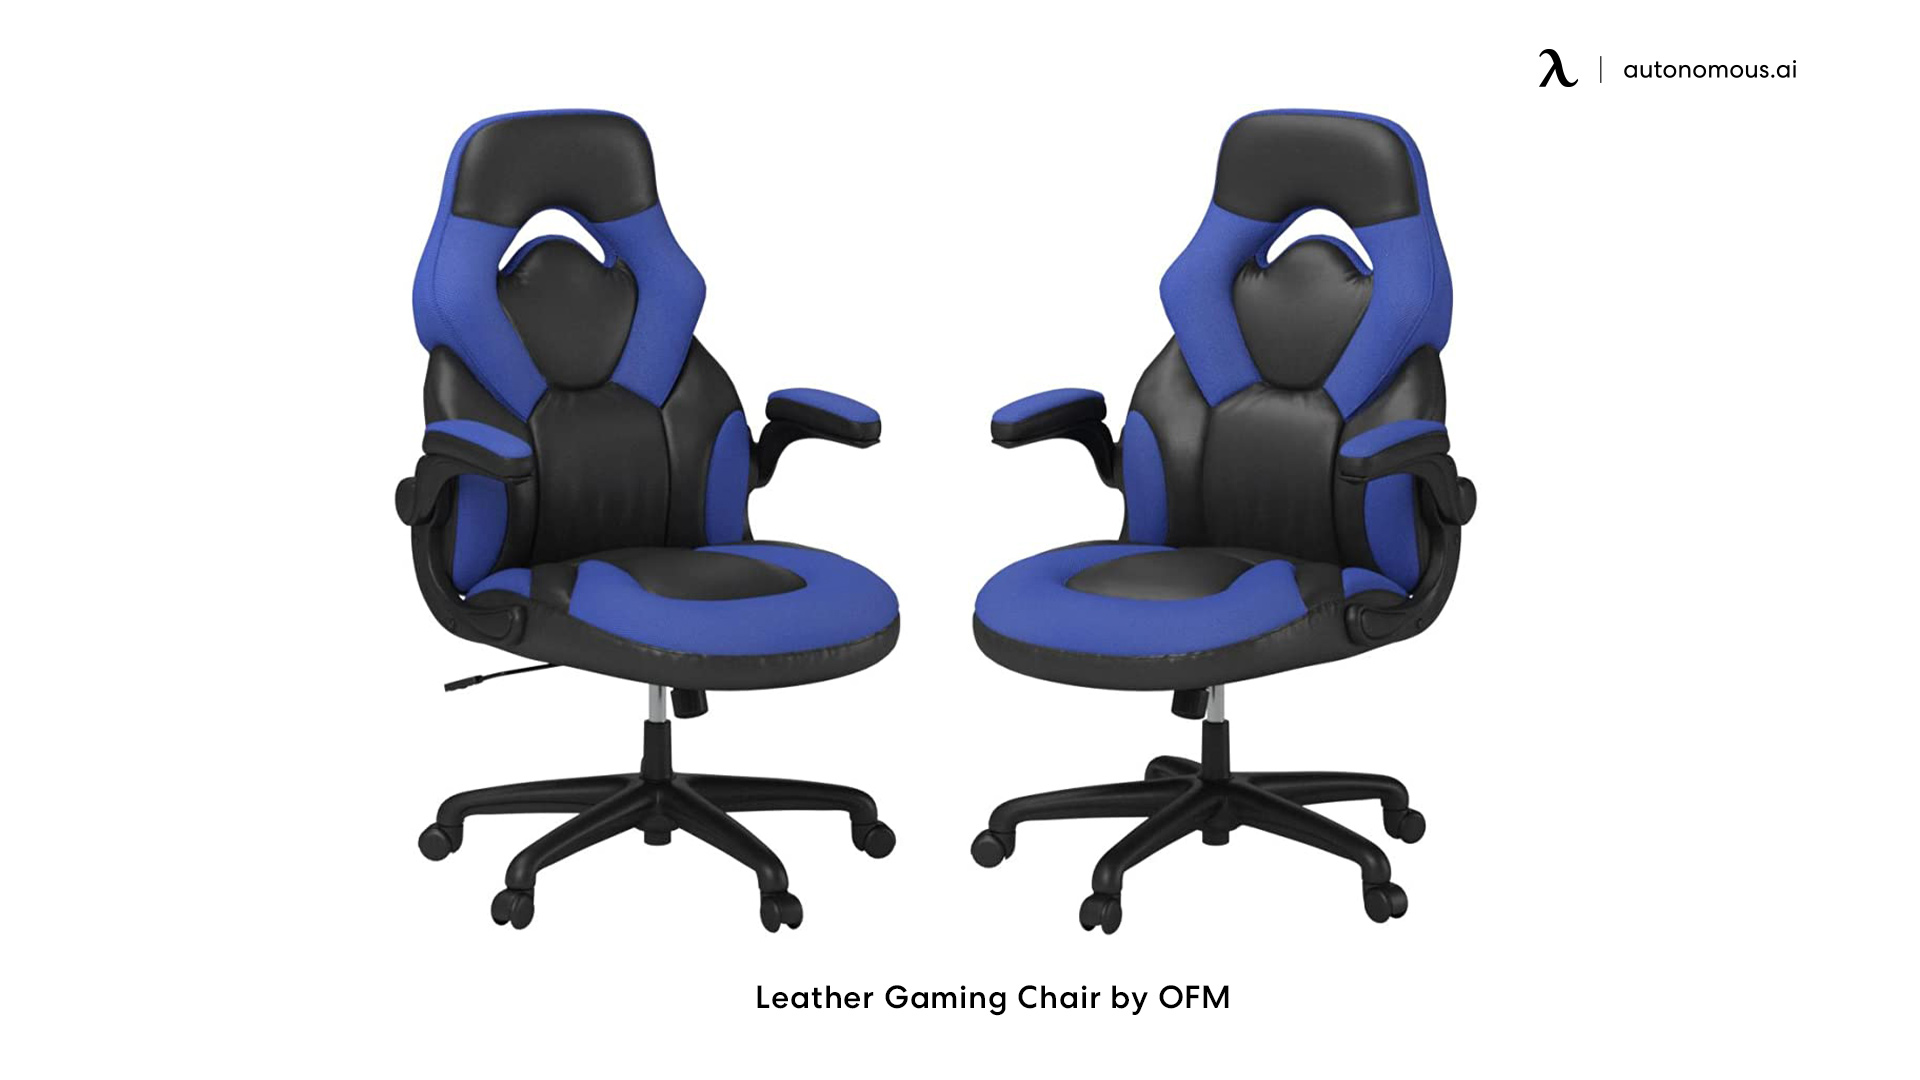 Leather Gaming Chair by OFM